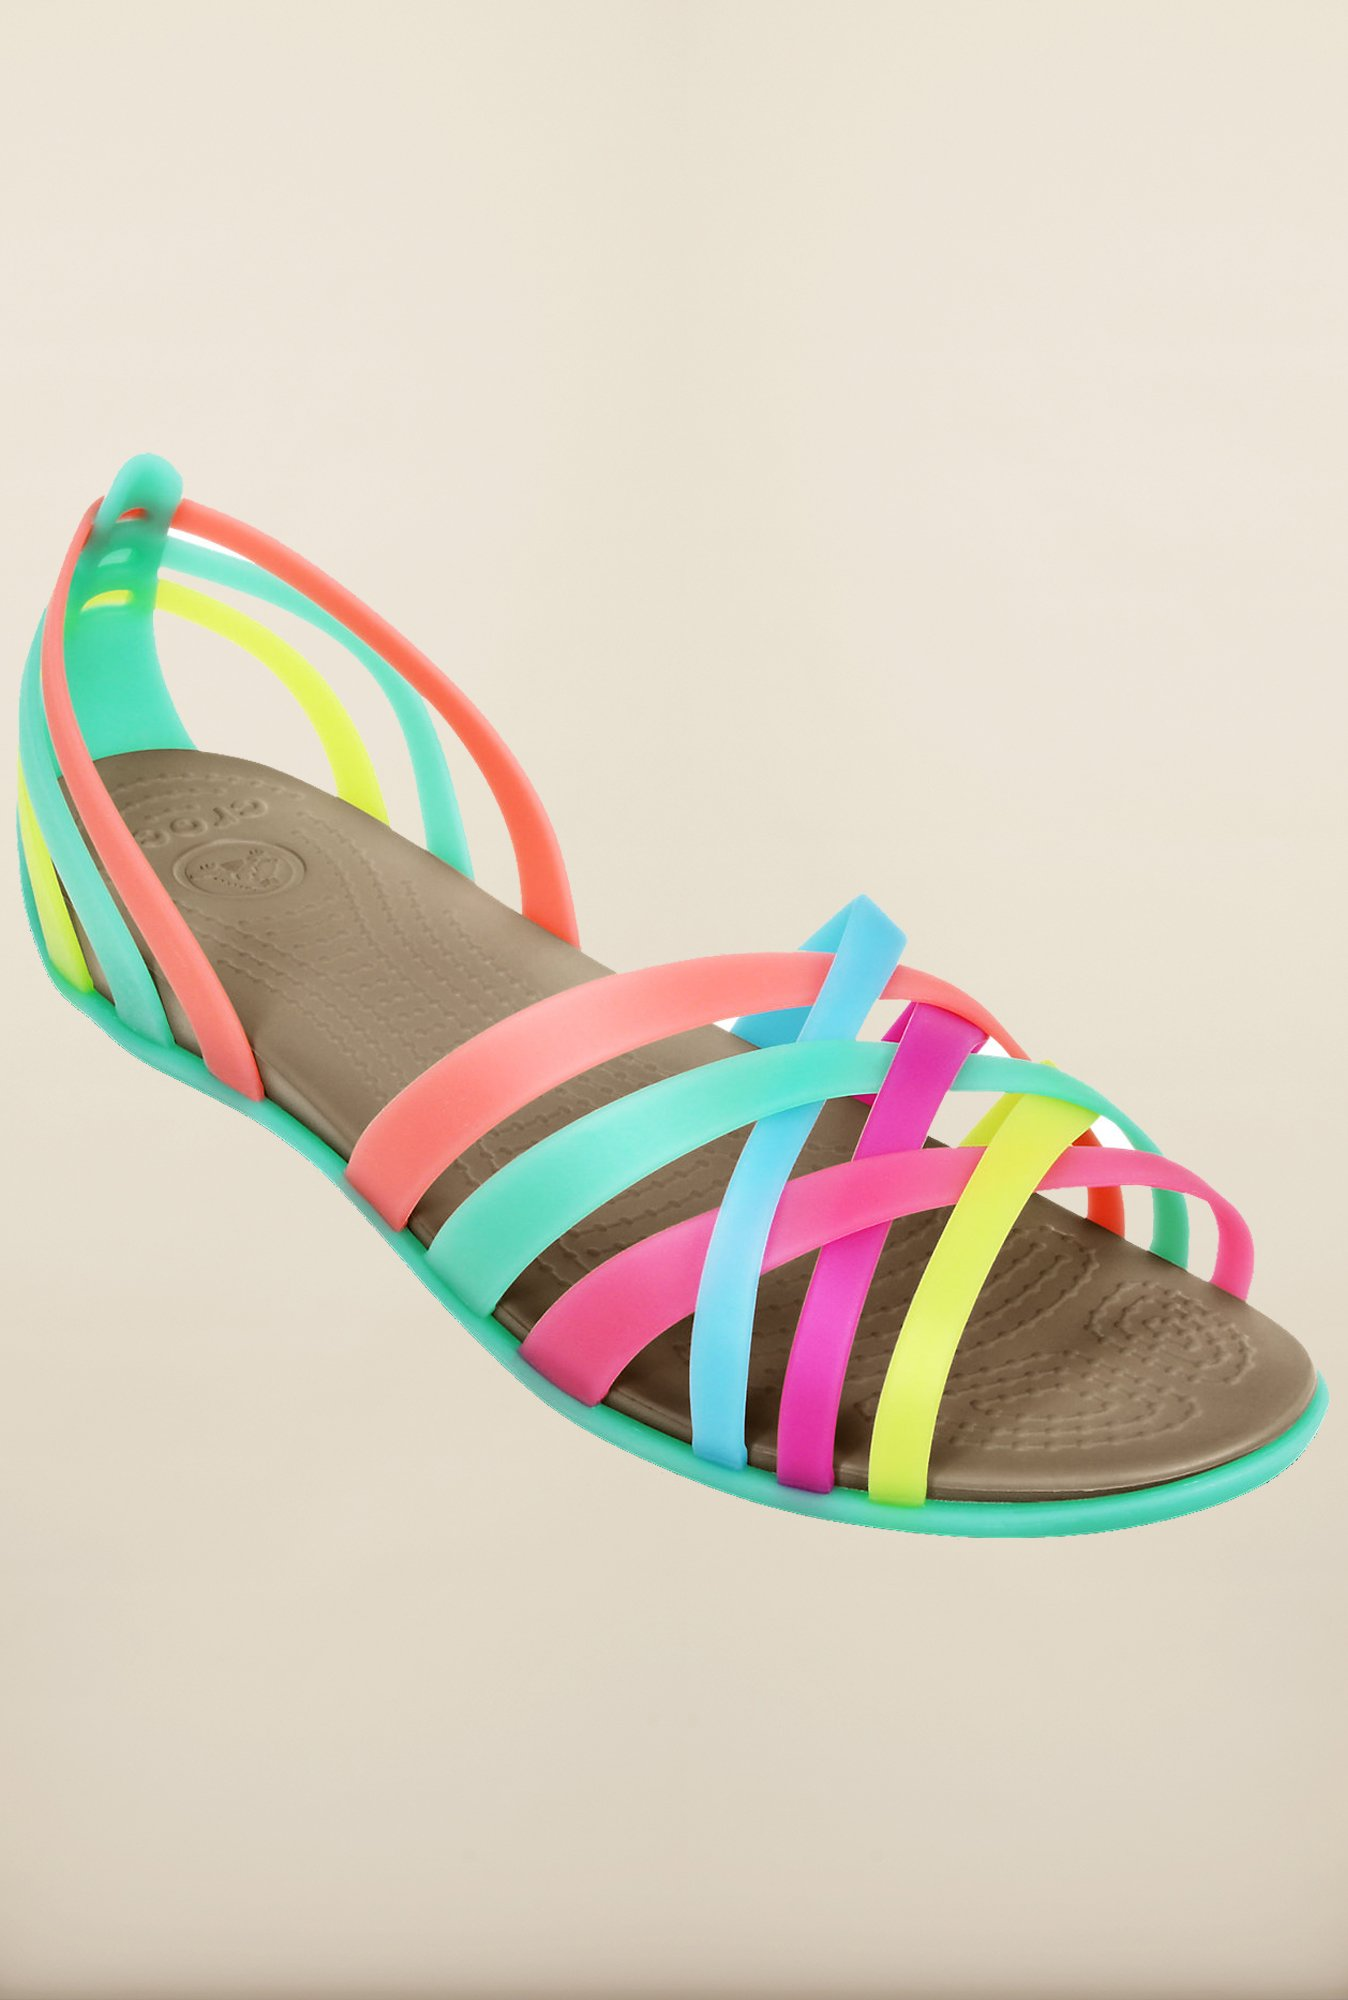 Crocs Huarache Multicolor Cross Strap Sandals